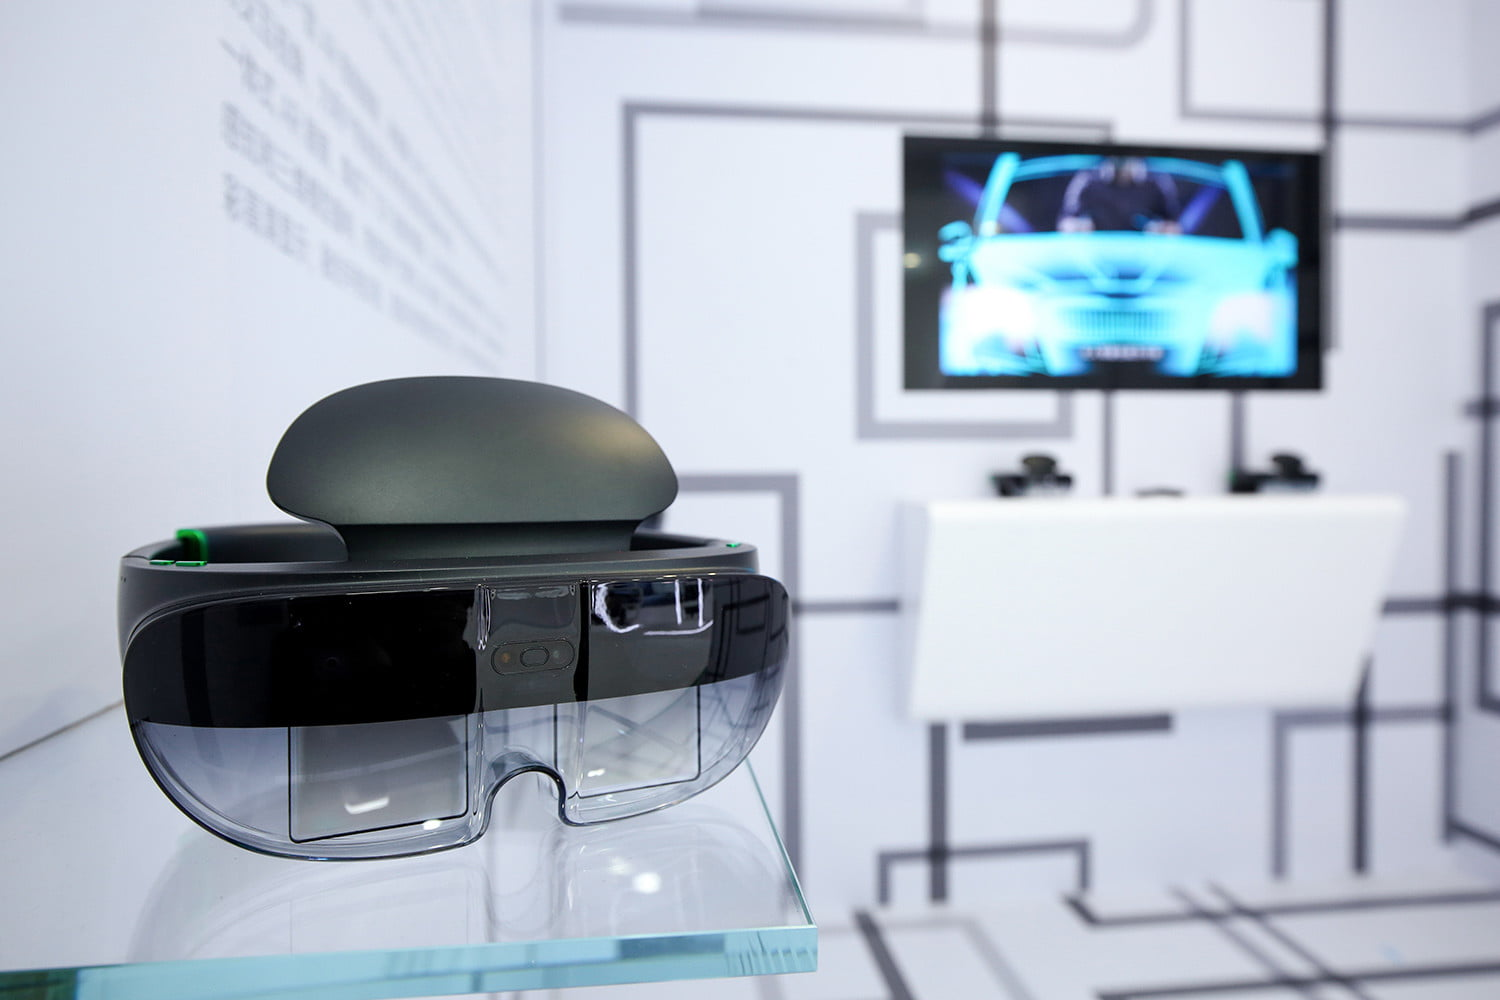 Oppo steps into augmented reality with its HoloLens-like AR Glass headset